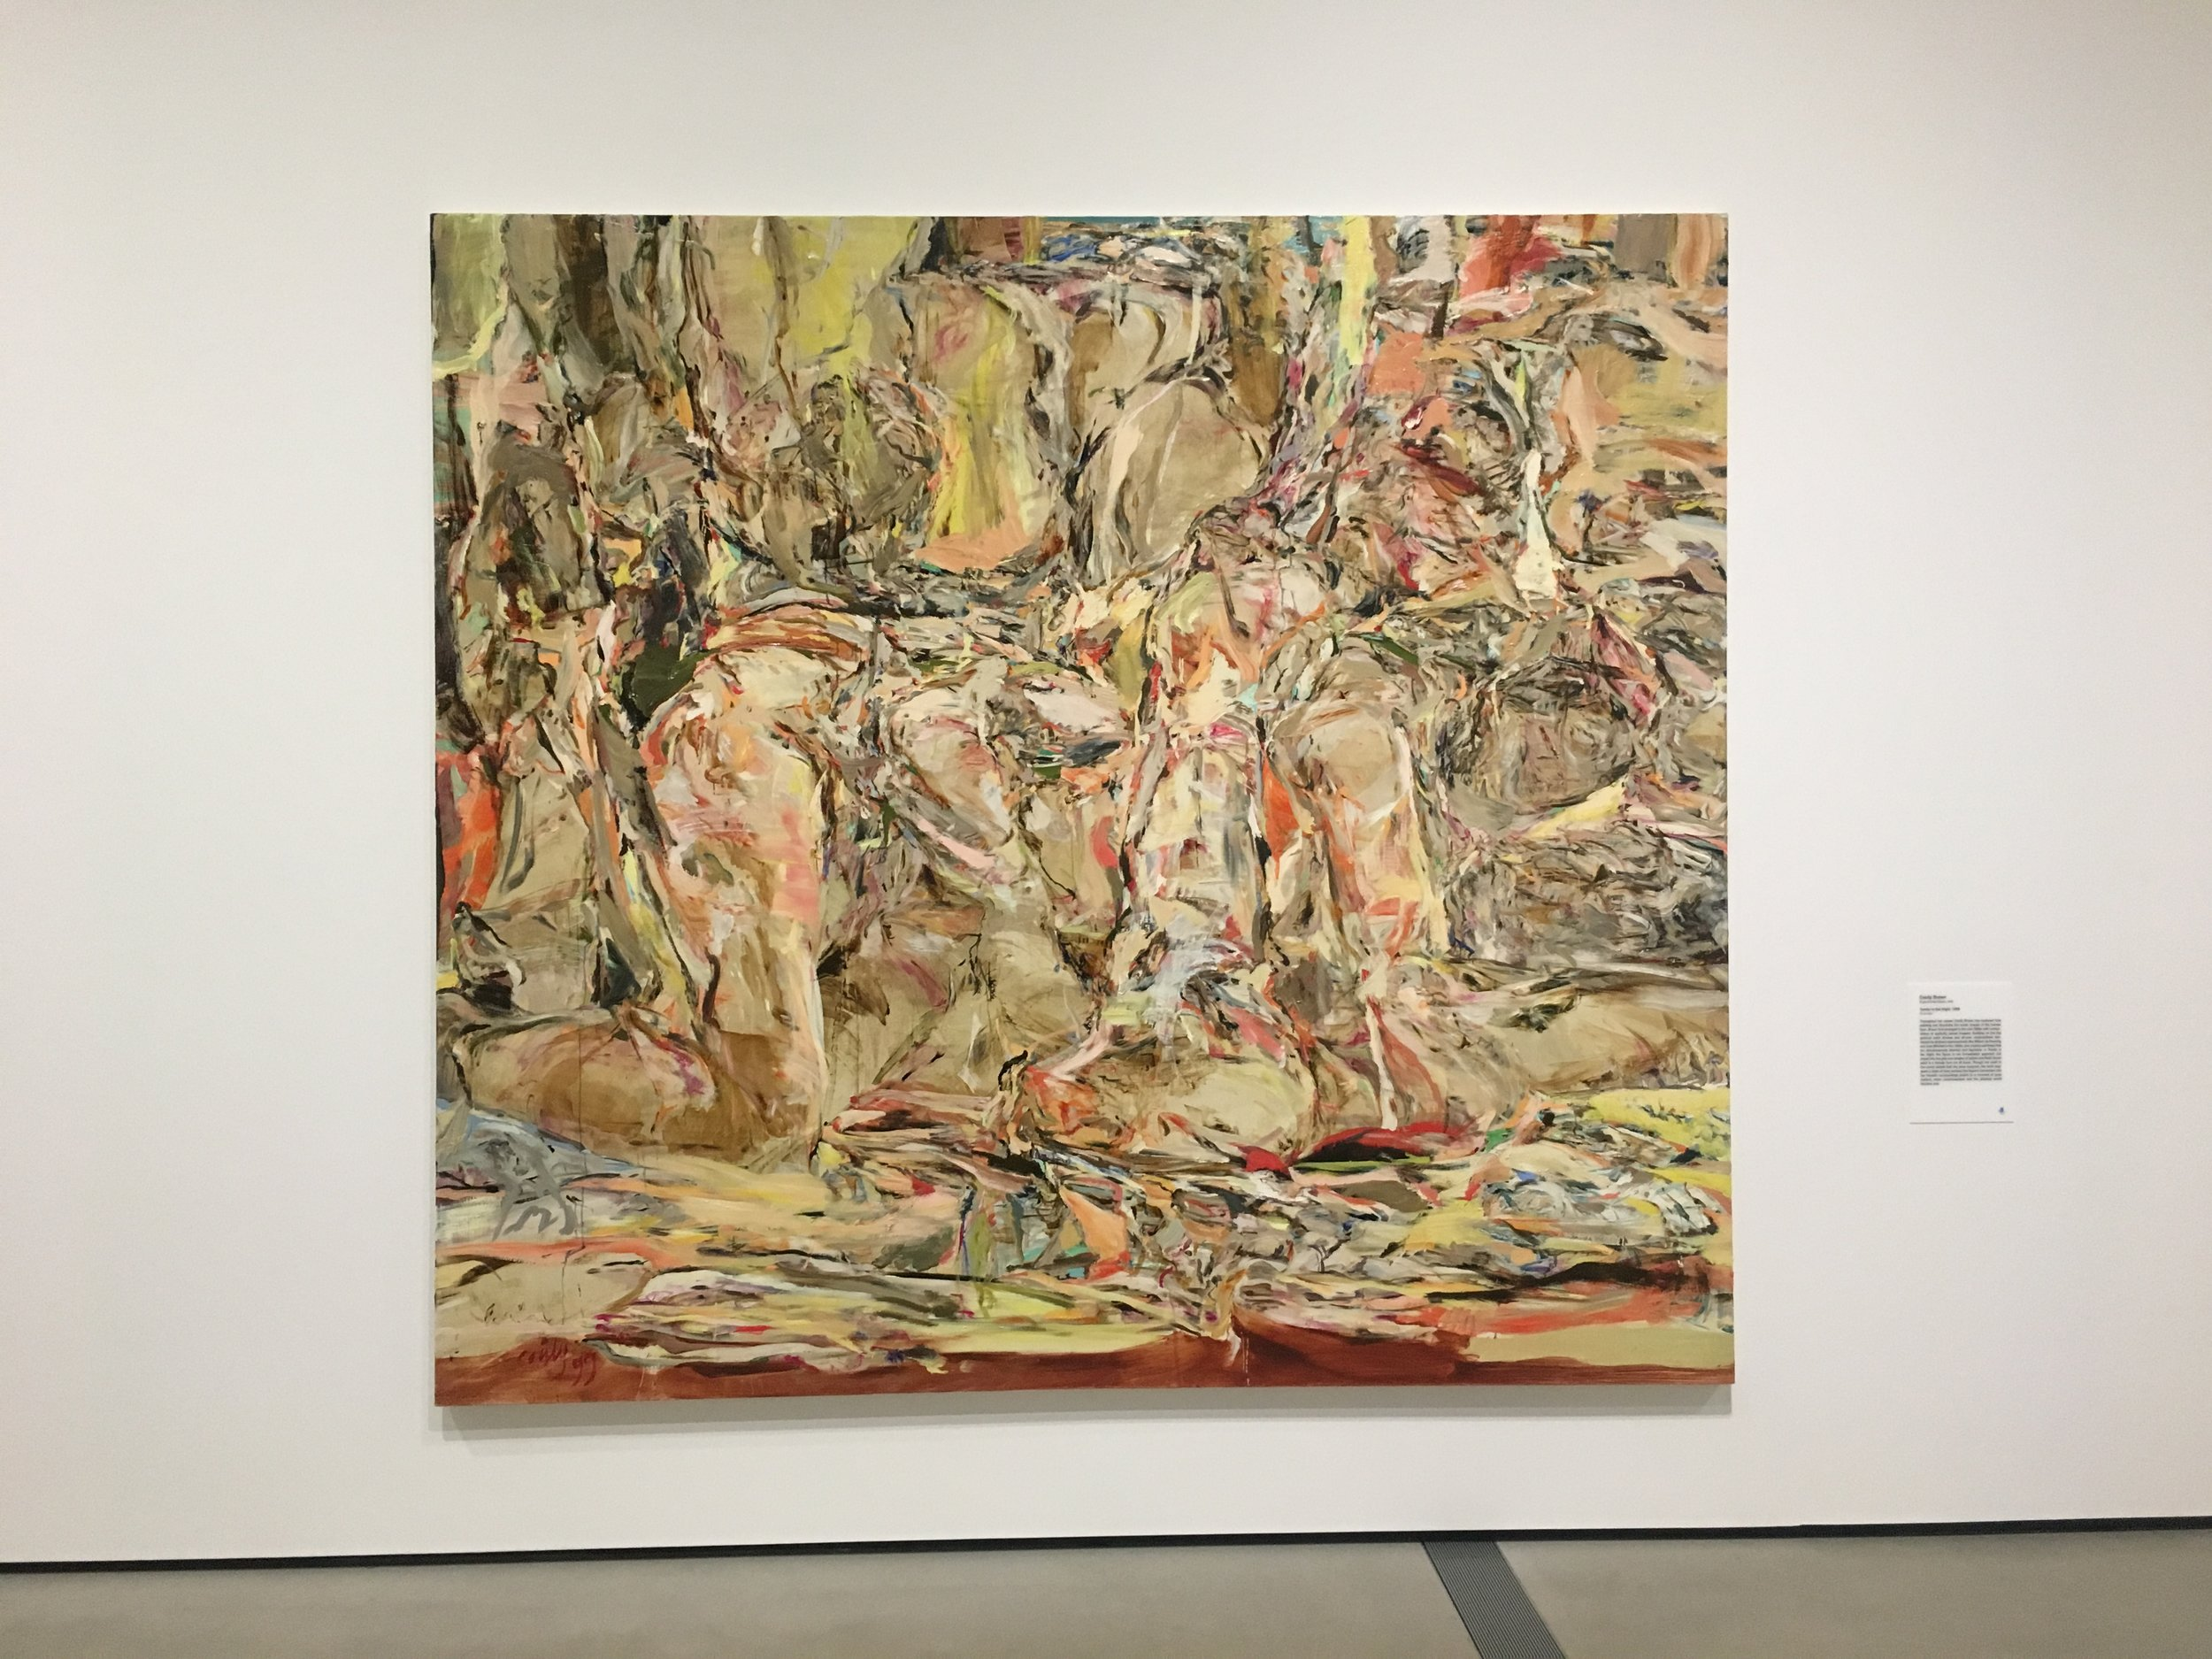 Gorgeous, sexy Cecily Brown that gets more risqué the longer you look.